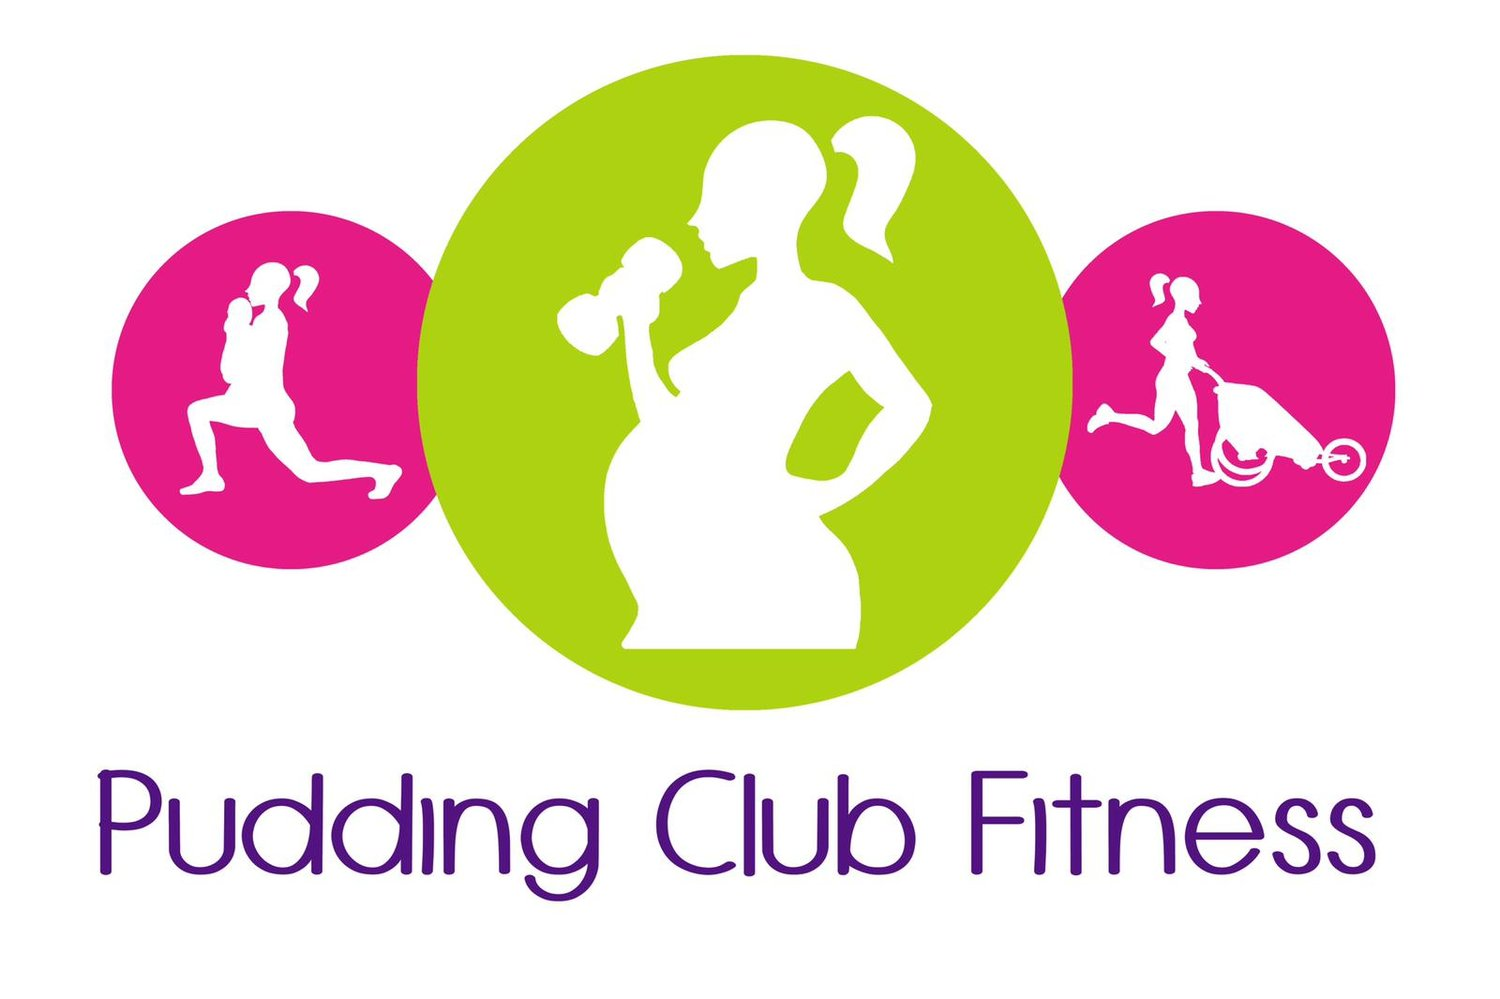 Pudding Club Fitness